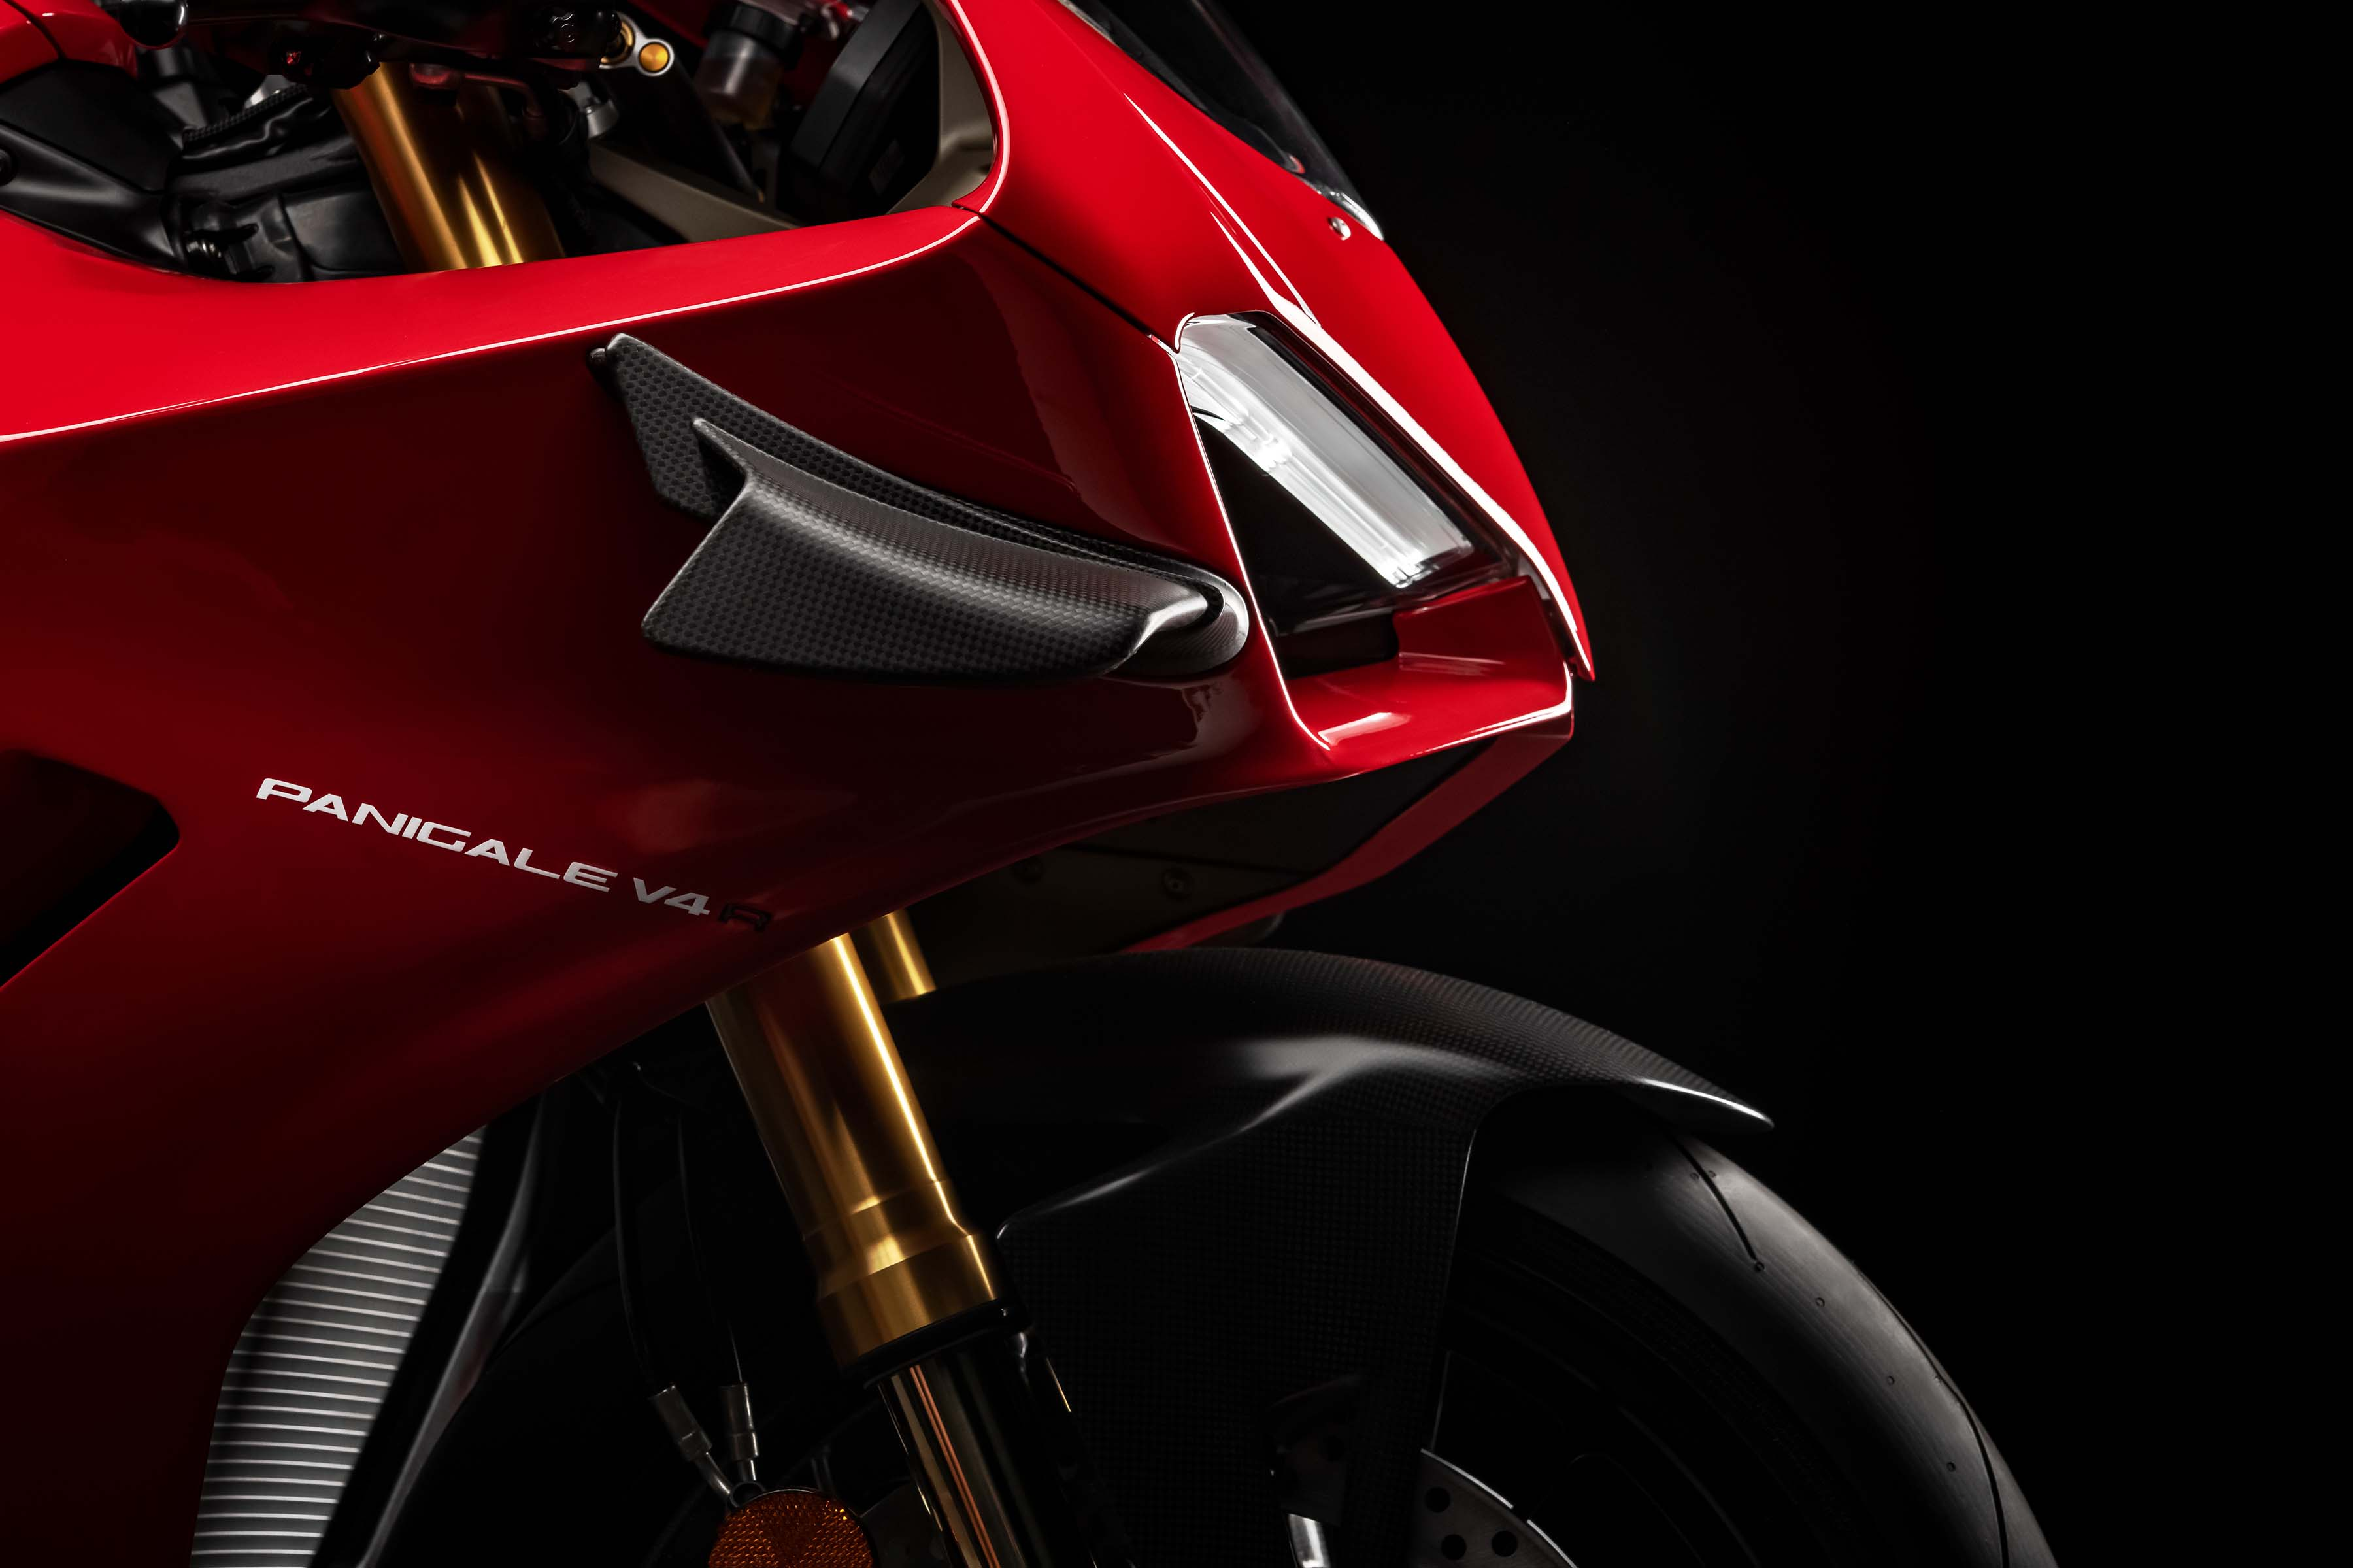 Ducati Panigale V4 R Debuts With 217hp Wings More Asphalt Rubber